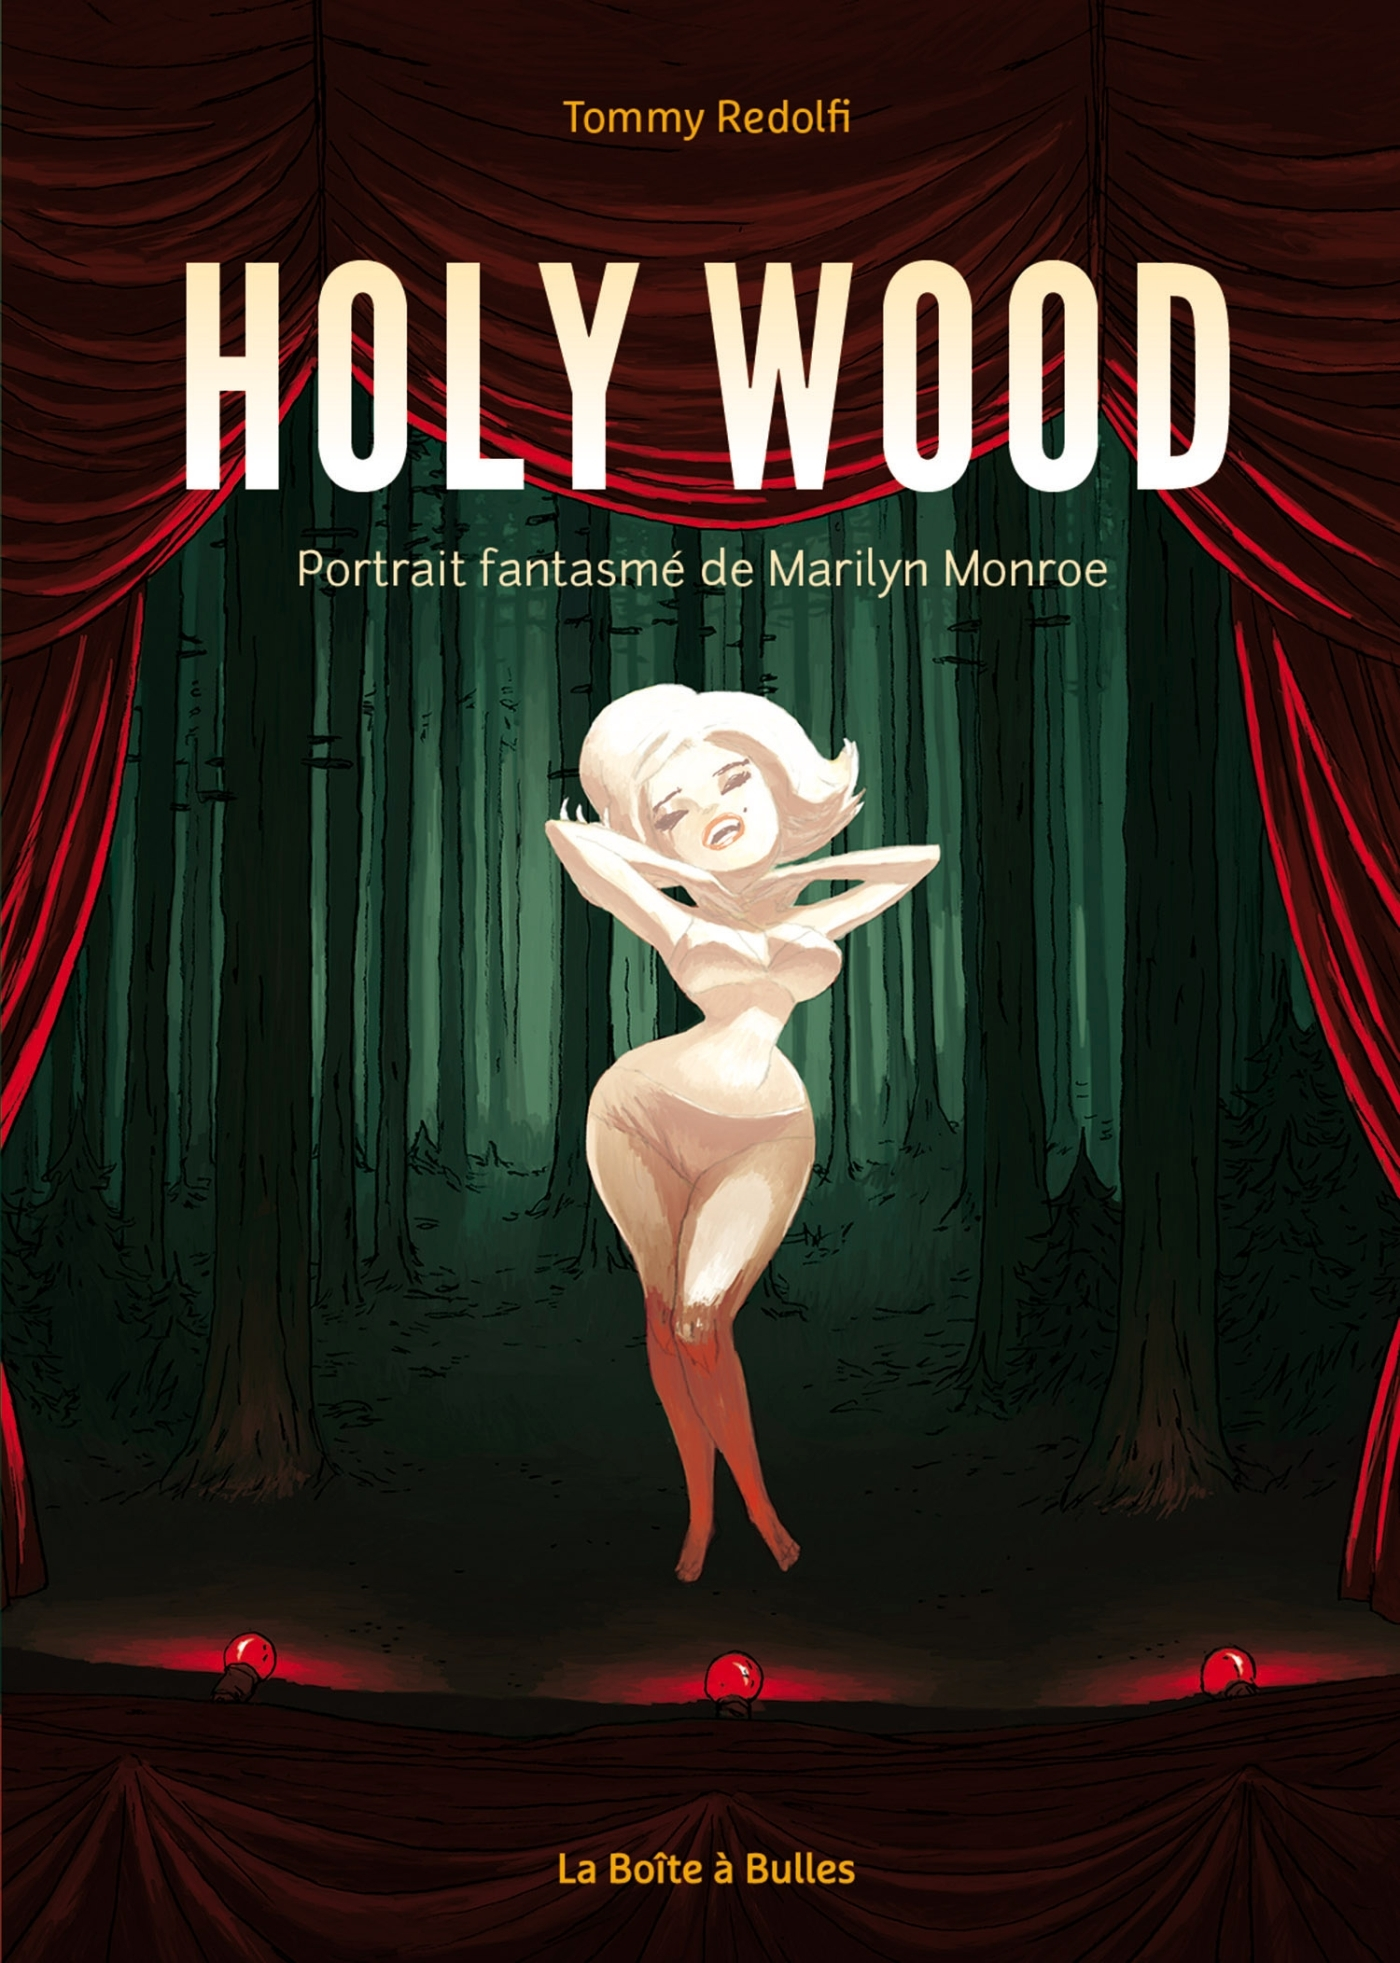 HOLY WOOD - PORTRAIT FANTASME DE MARILYN MONROE